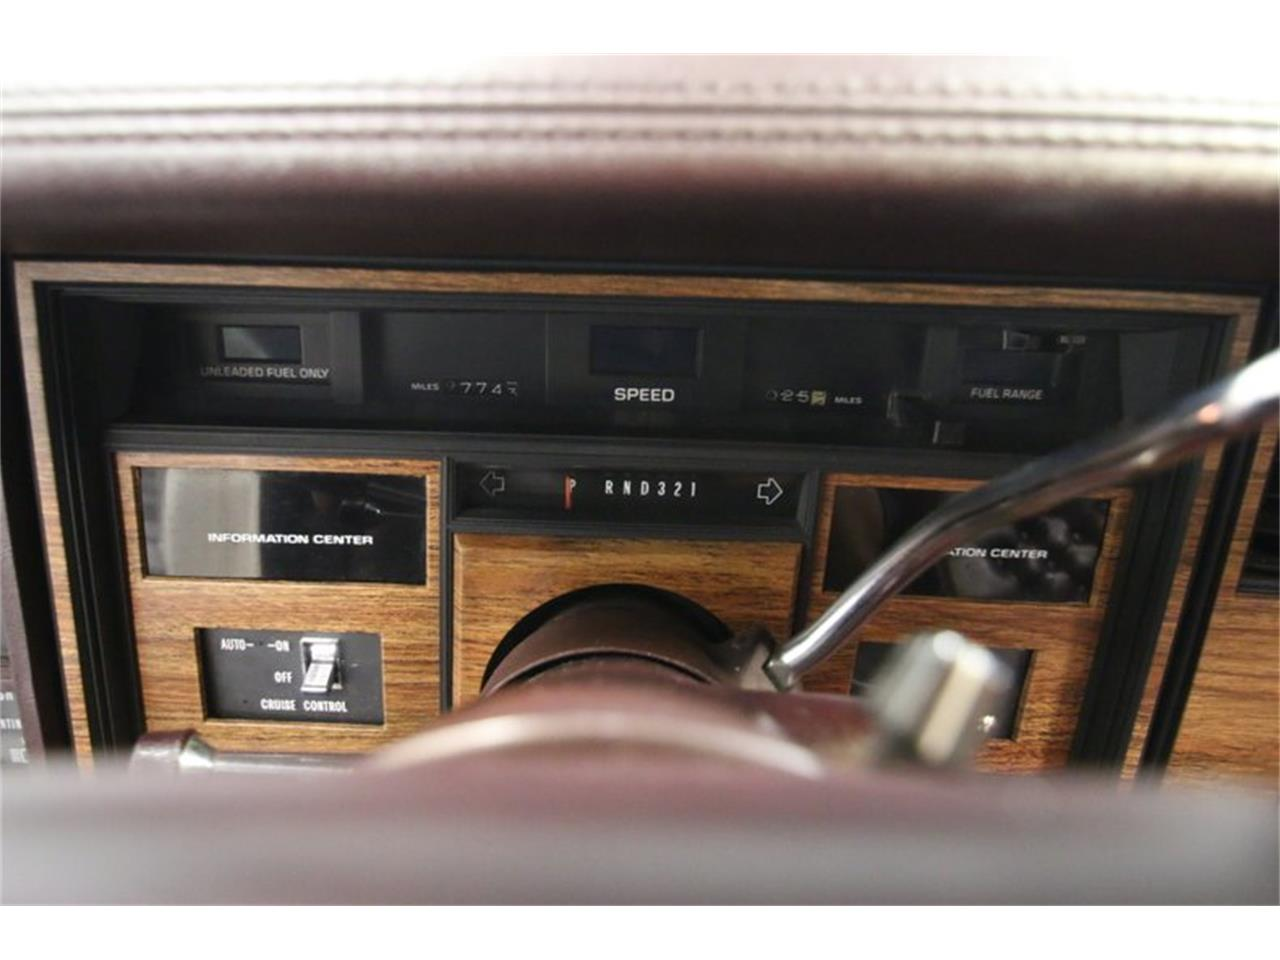 Large Picture of 1985 Cadillac Seville located in Georgia - $11,995.00 - Q3ZM